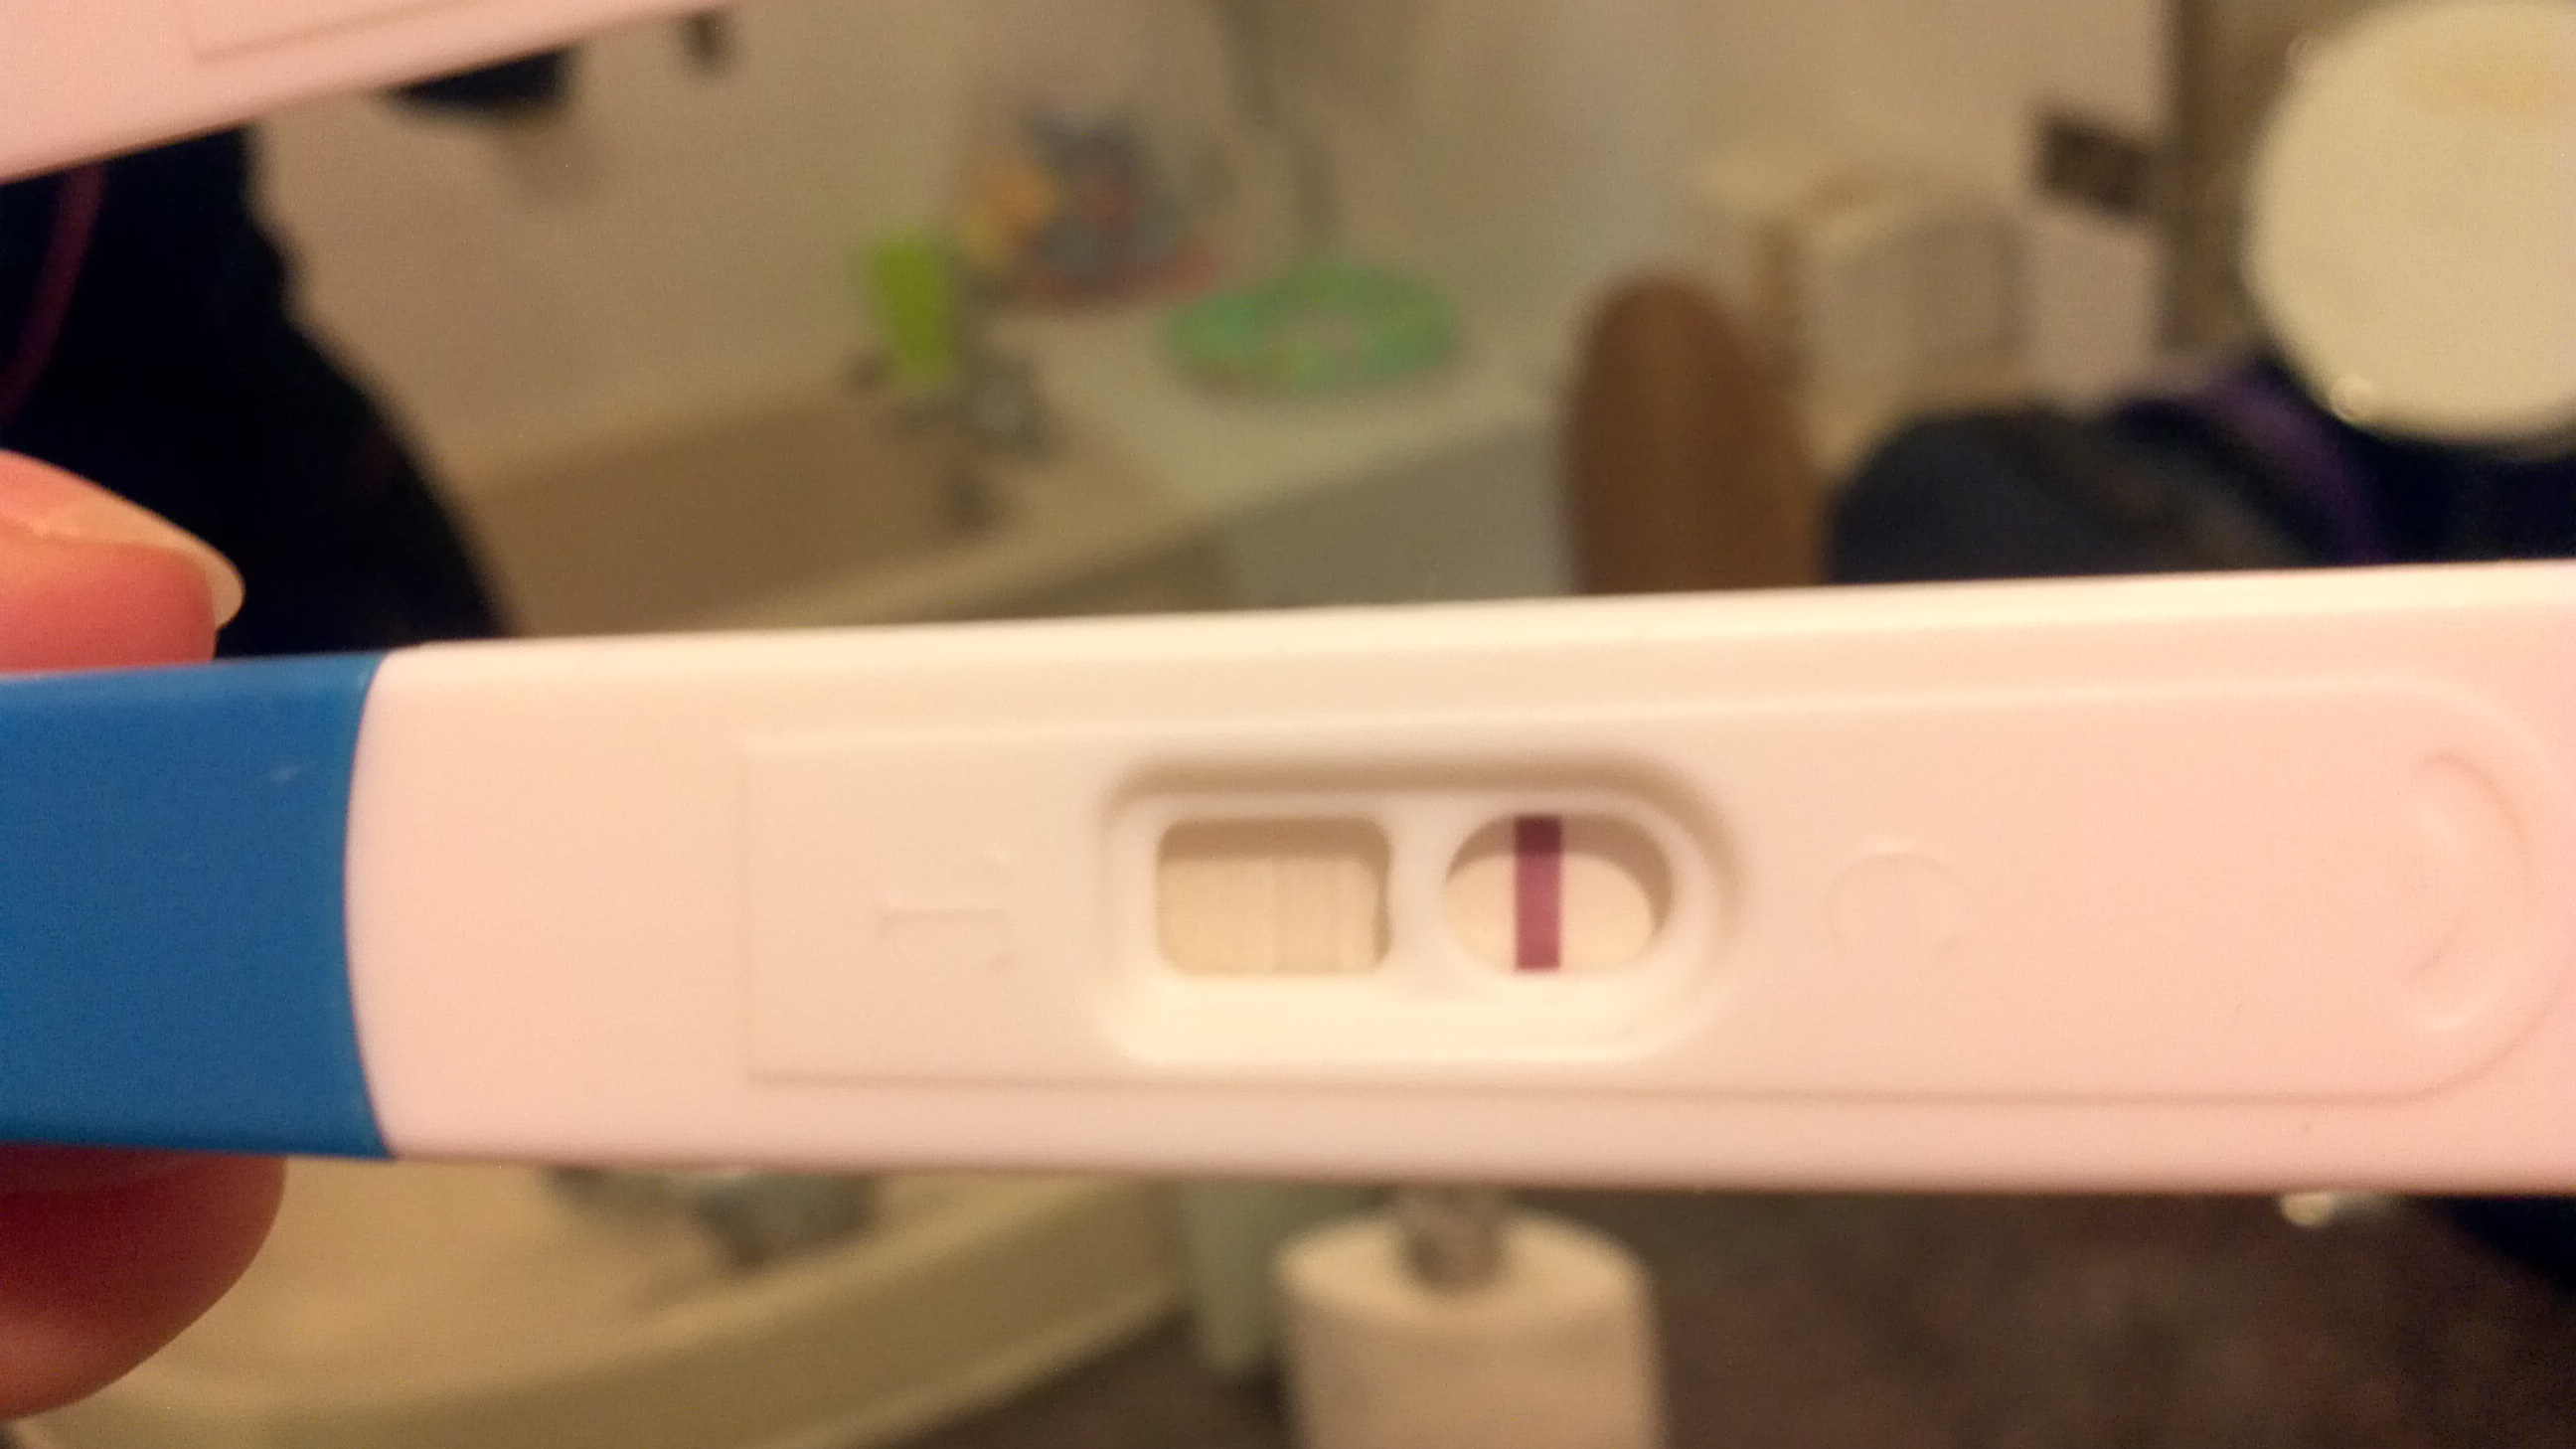 Extremely Faint Line on Pregnancy test  Help! — MadeForMums